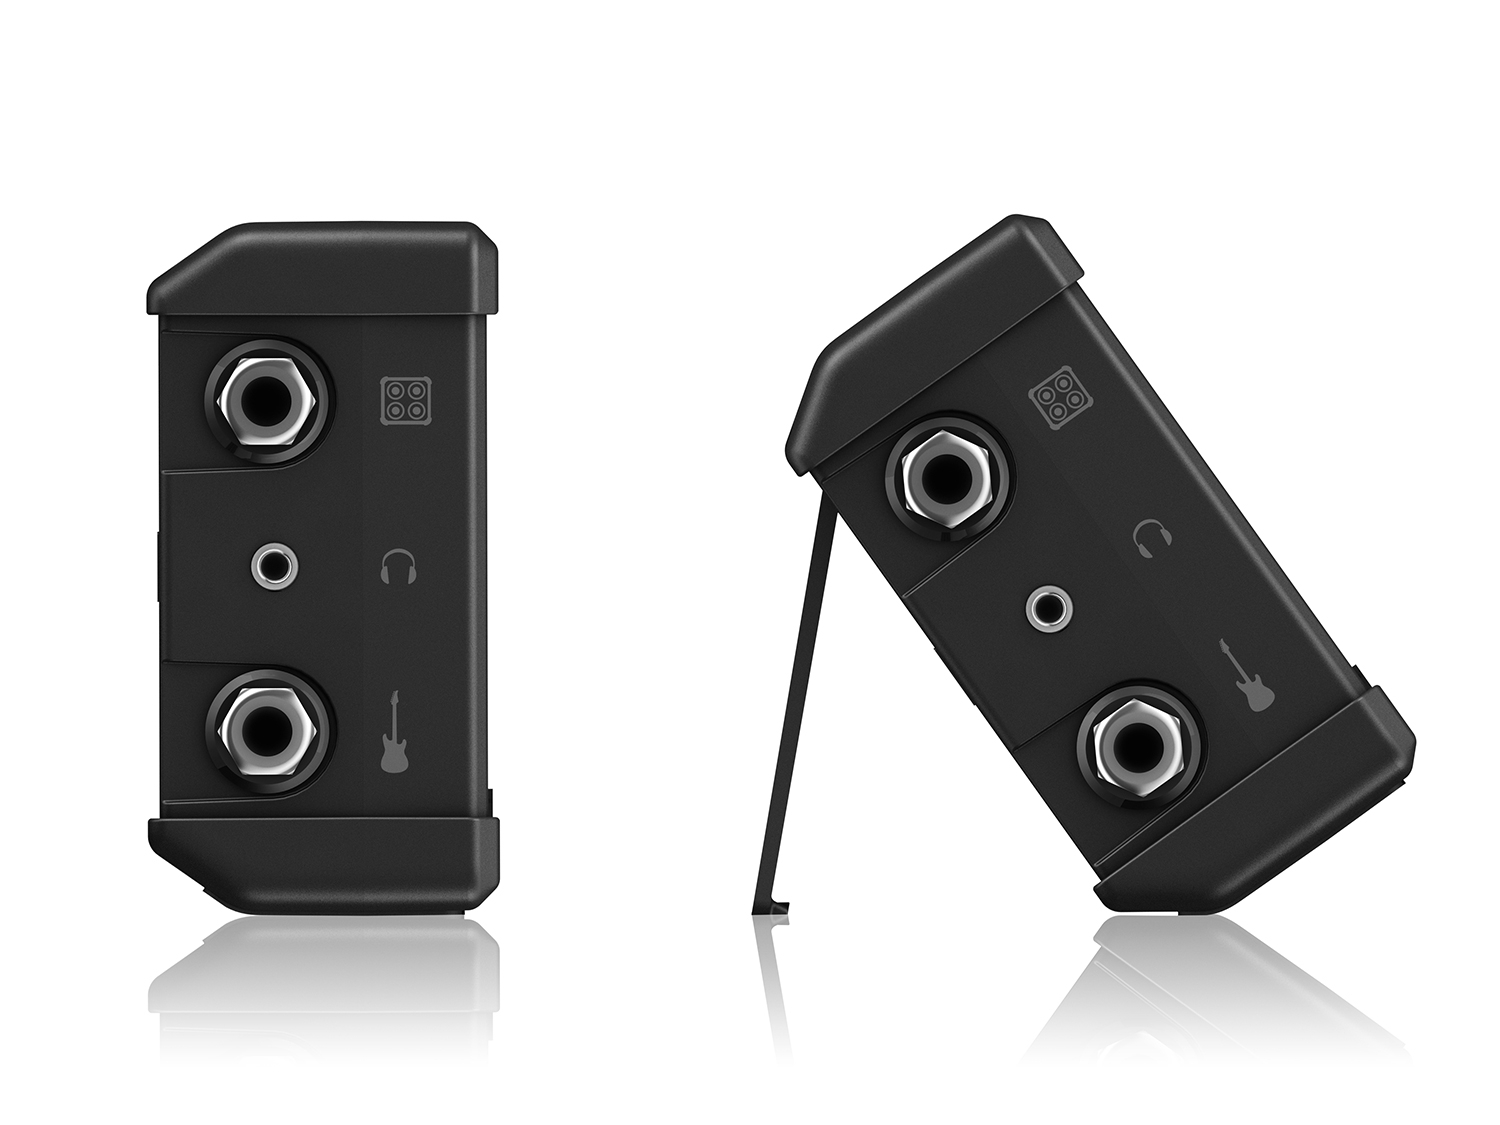 amp hookup There are a few ways that one can expect to connect a subwoofer to an amplifier, receiver, or processor (also known as a home theater receiver.